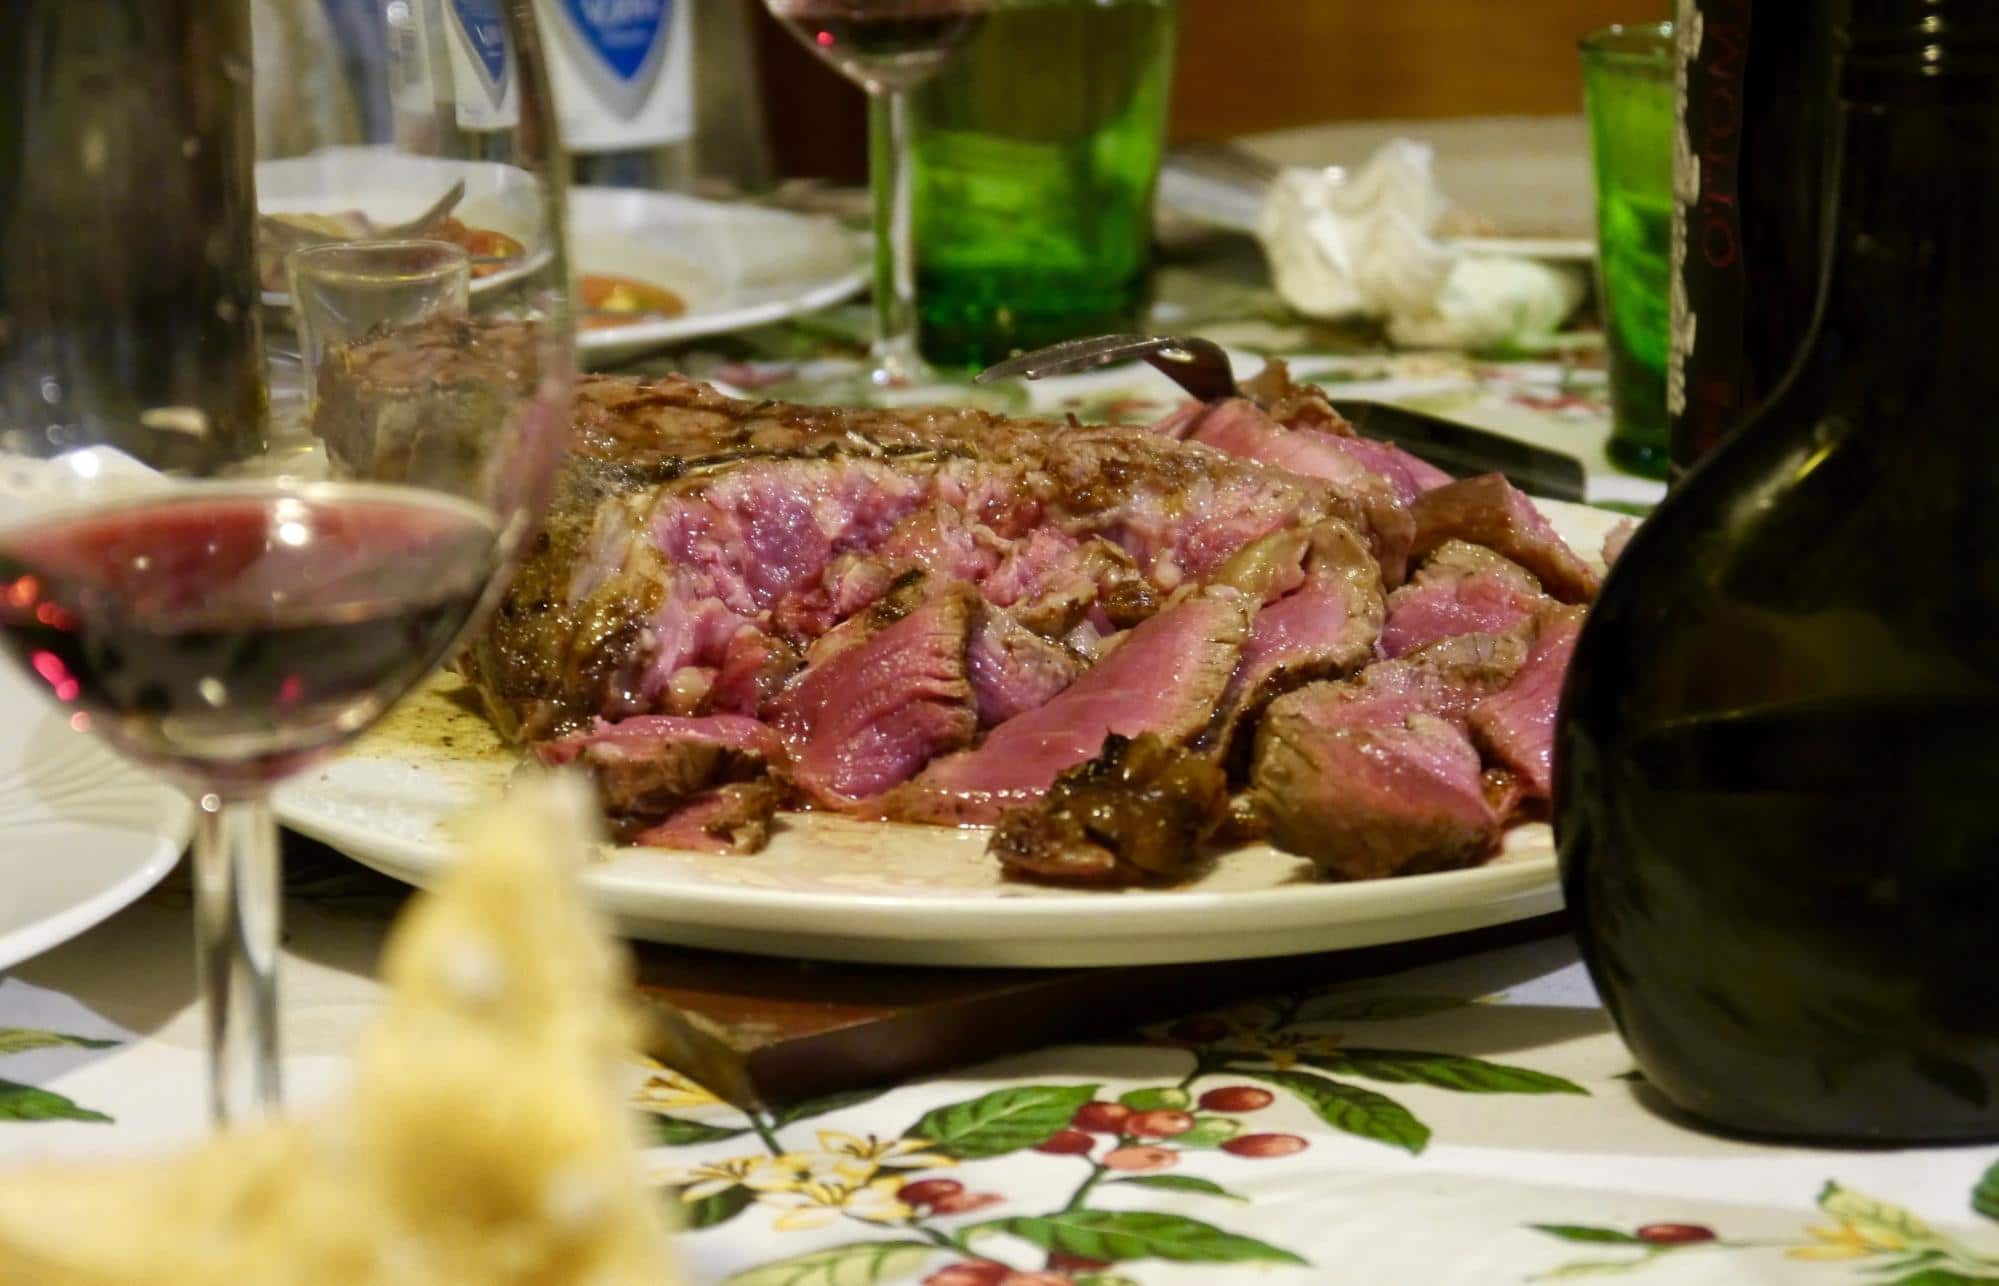 A Florentine steak with a glass of Brunello di Montalcino enjoyed at an Italian home